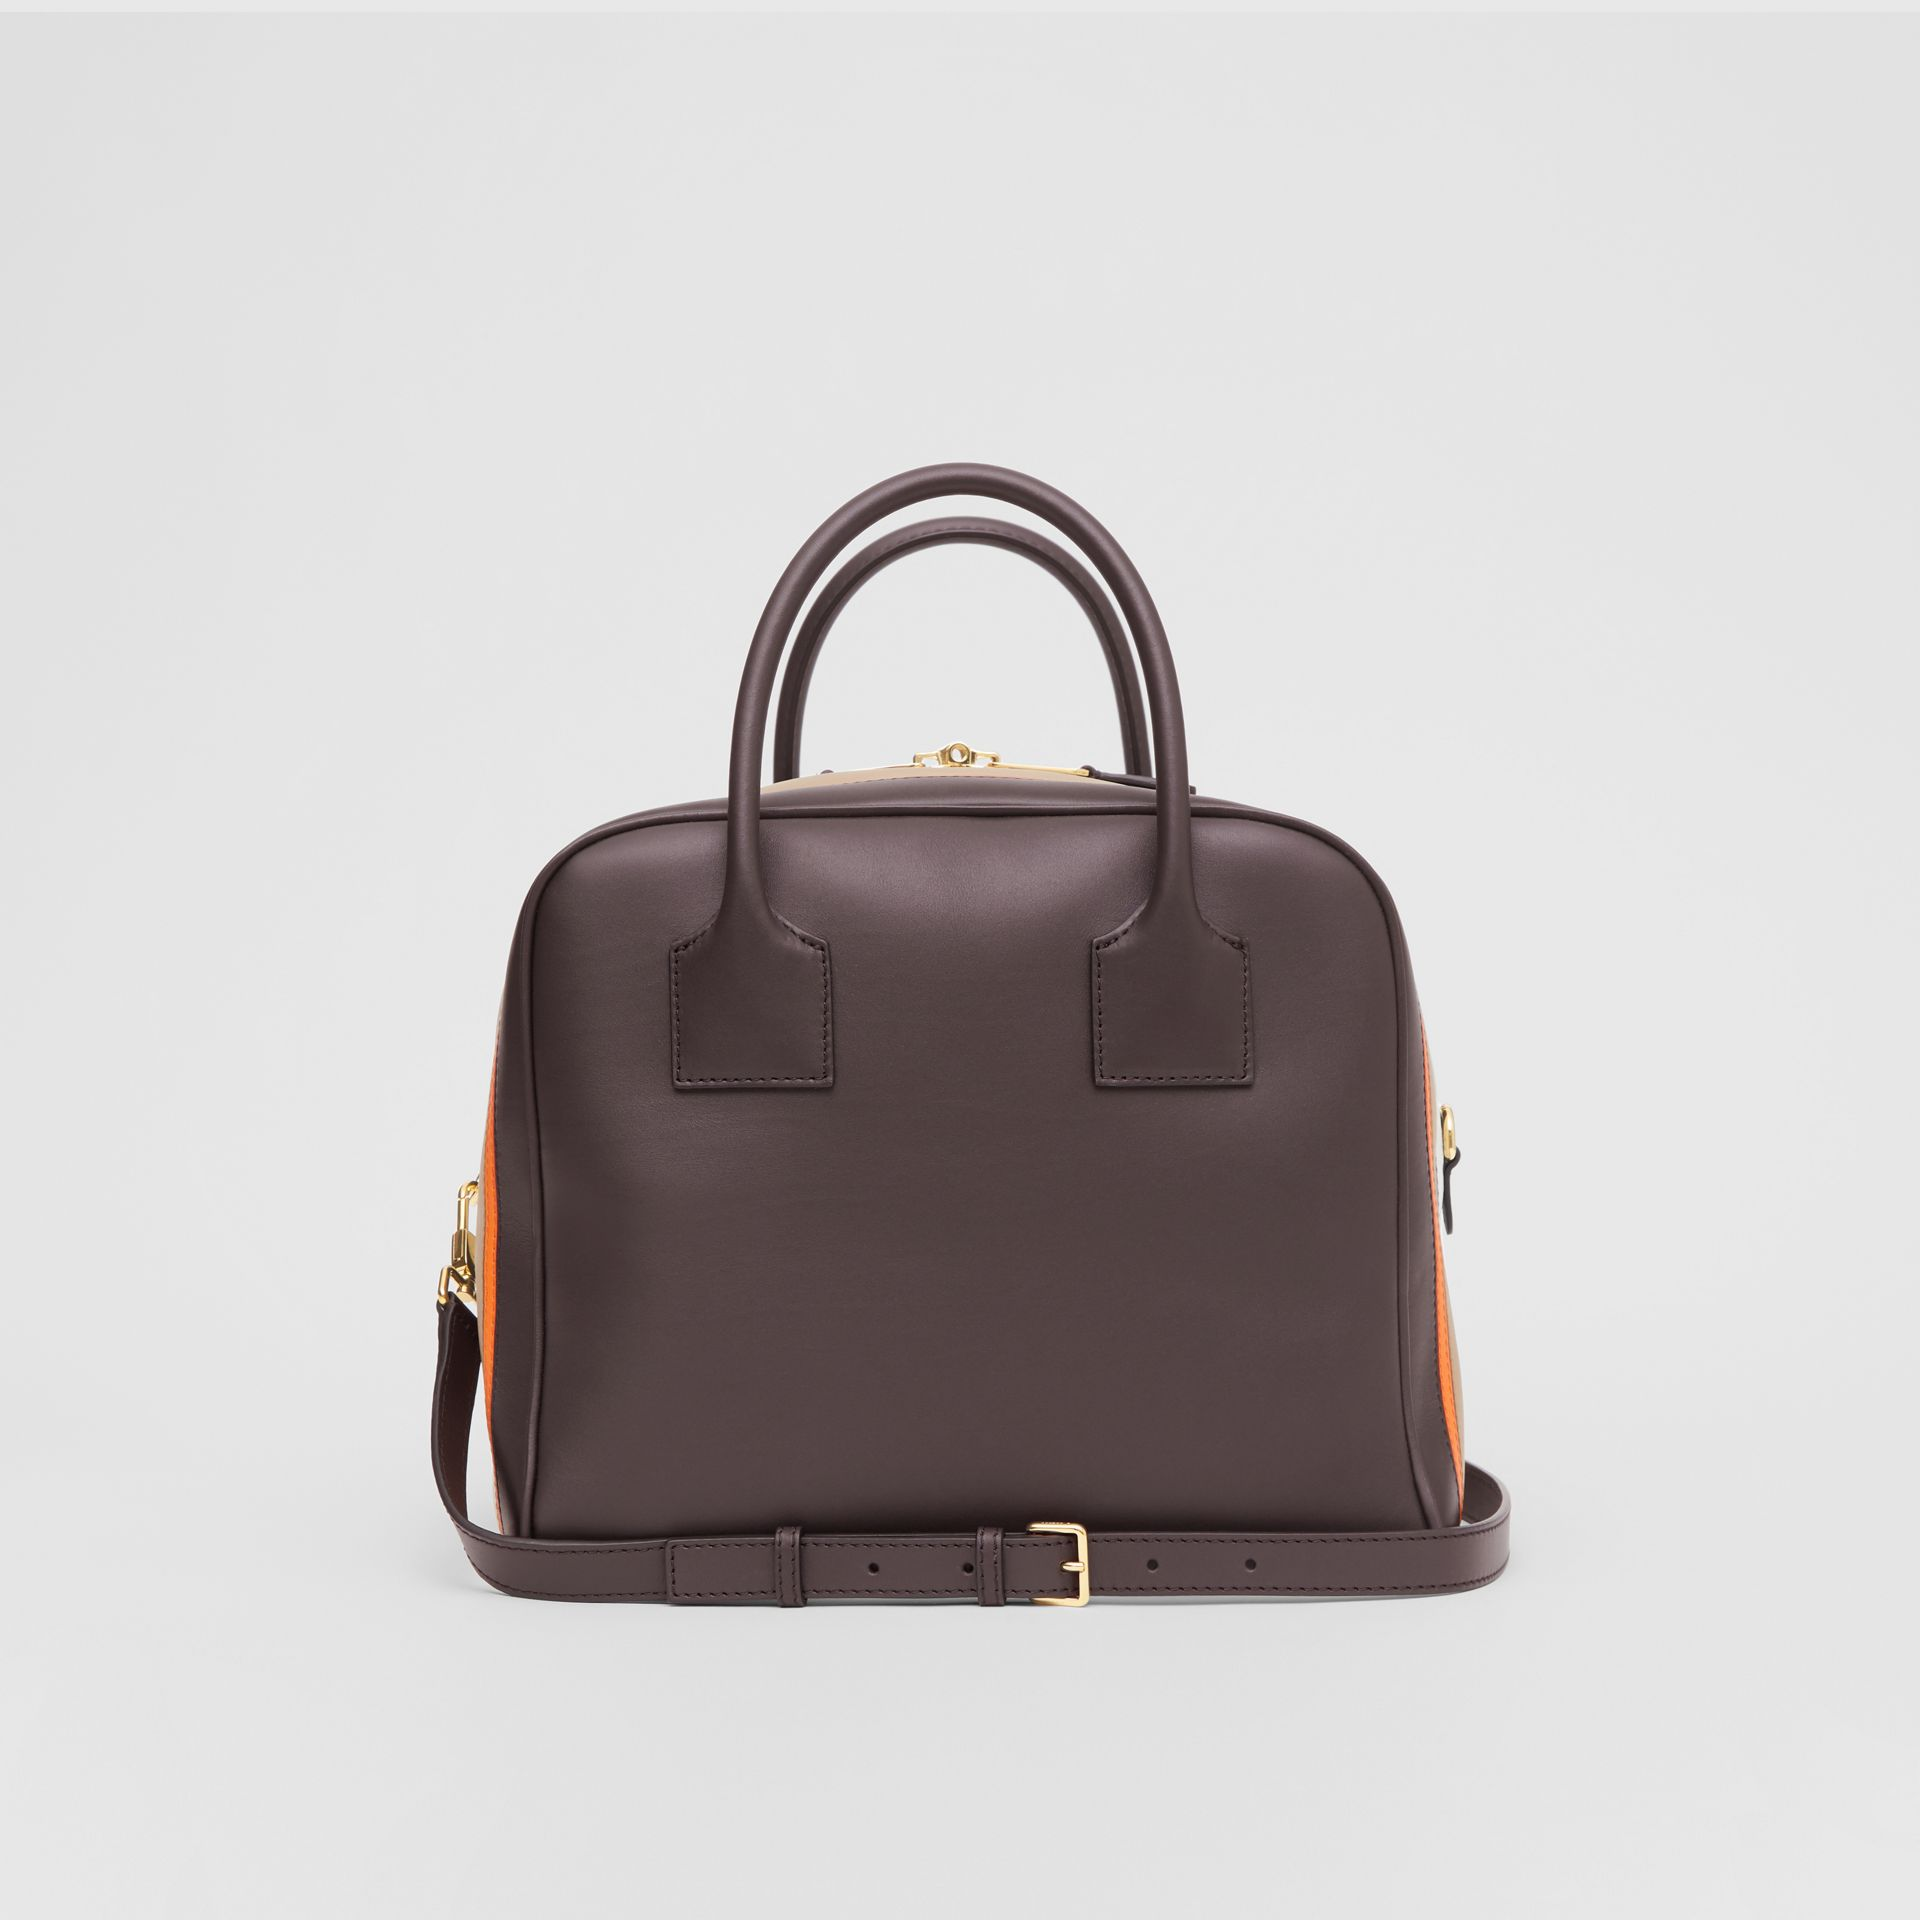 Medium Stripe Intarsia Leather Cube Bag in Coffee/pumpkin - Women | Burberry - gallery image 7